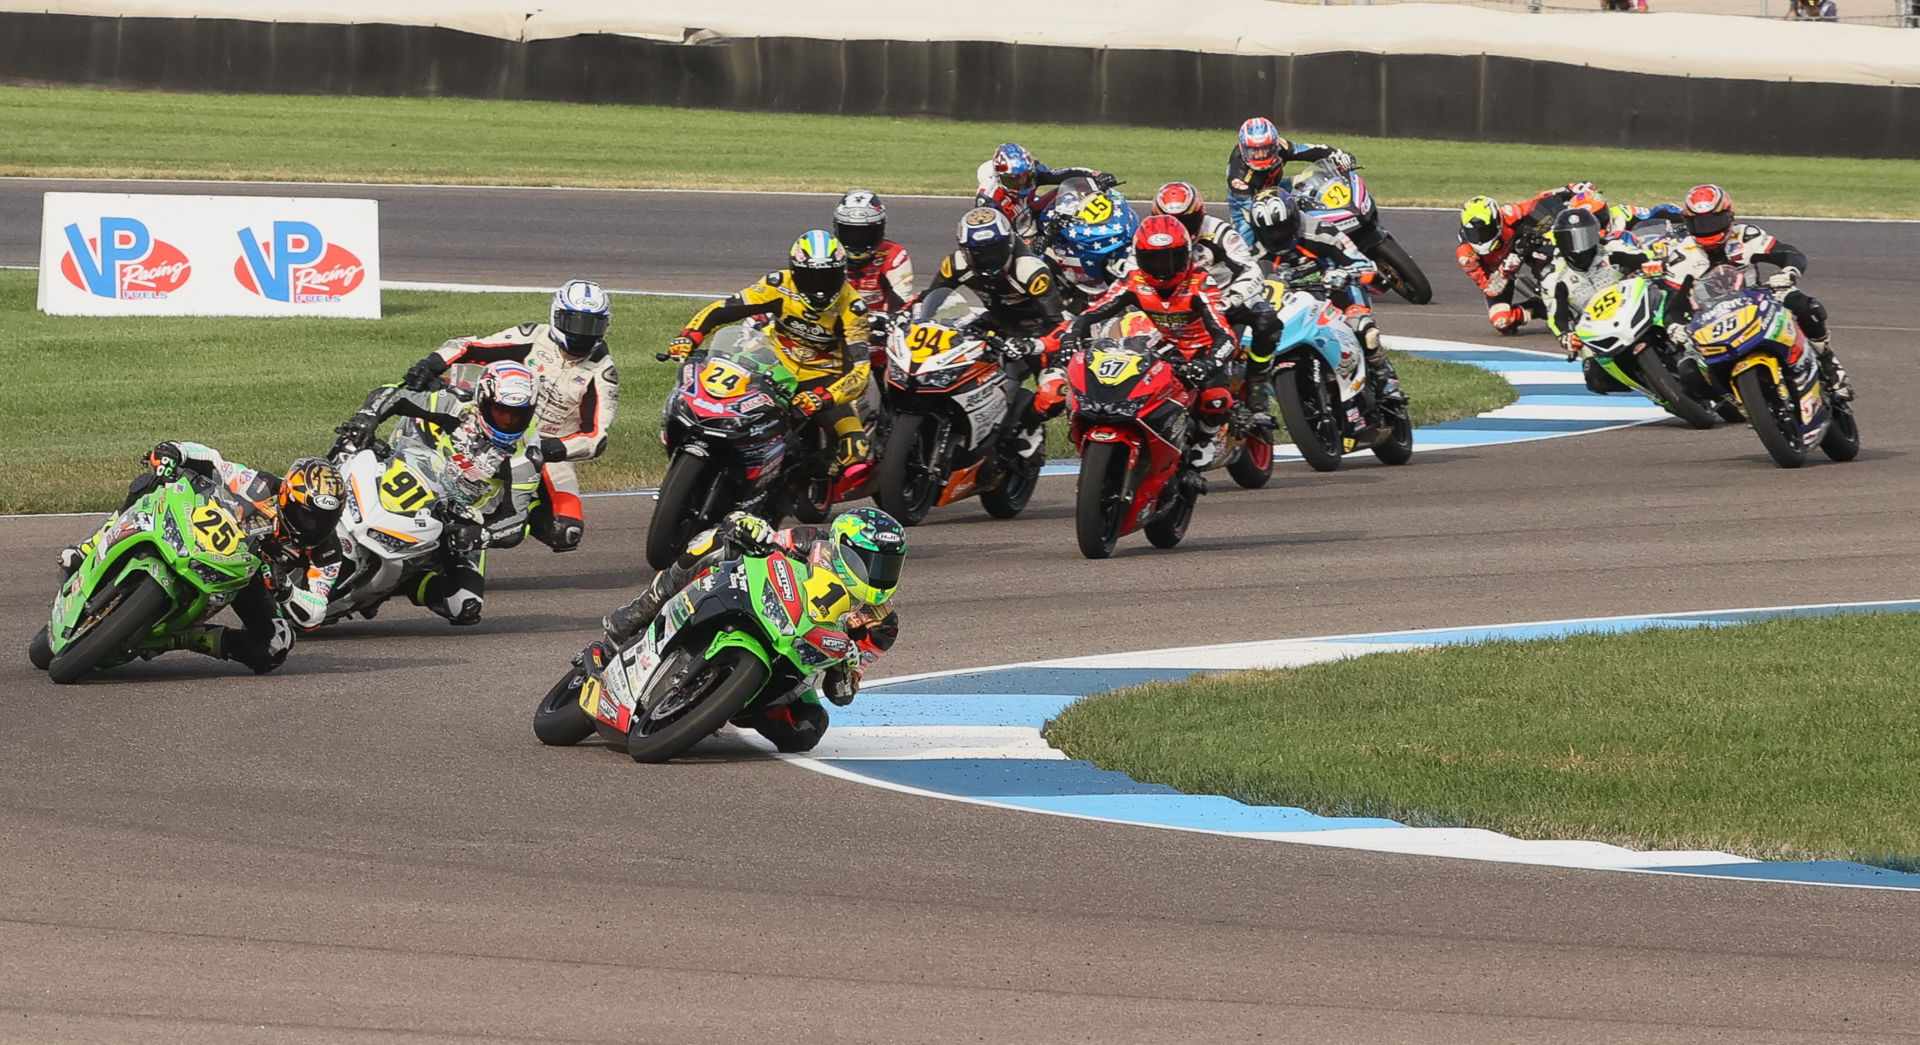 SportbikeTrackGear.com will be the title sponsor of the MotoAmerica Junior Cup in 2021. Photo by Brian J. Nelson.